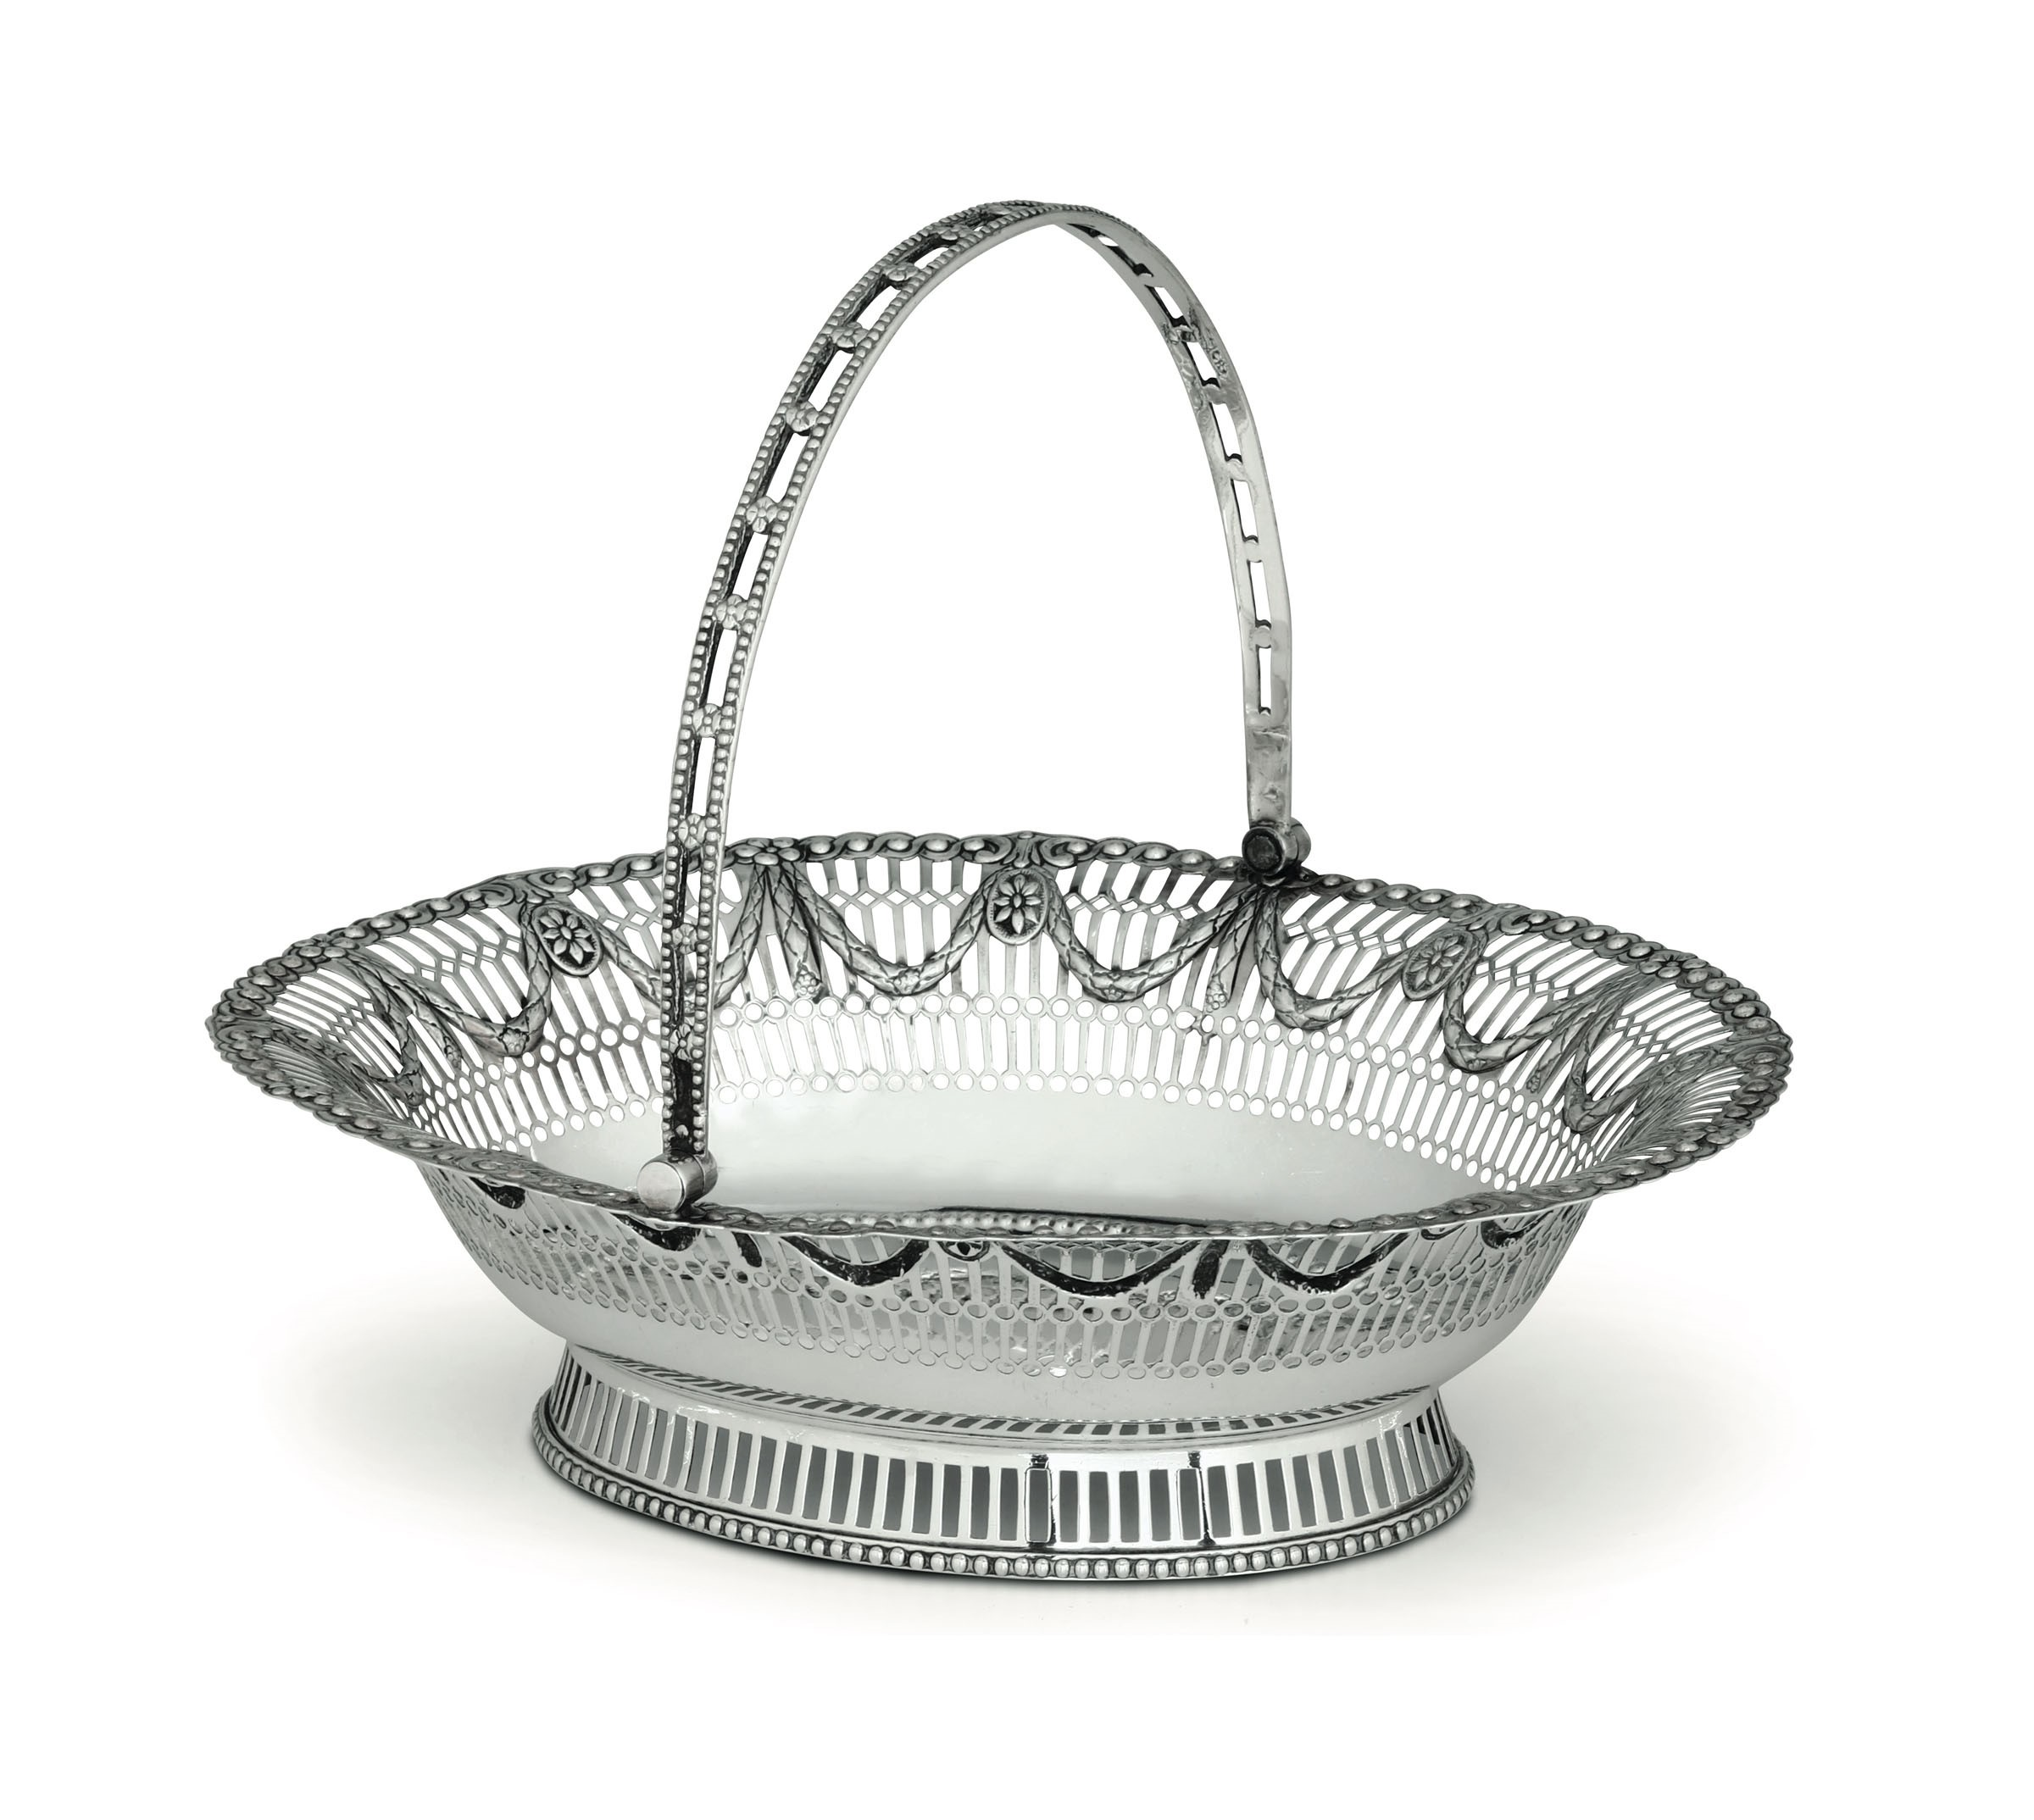 Lot 18A - A silver basket, London, 1775 - Molten, embossed and perforated silver. Silversmith [...]